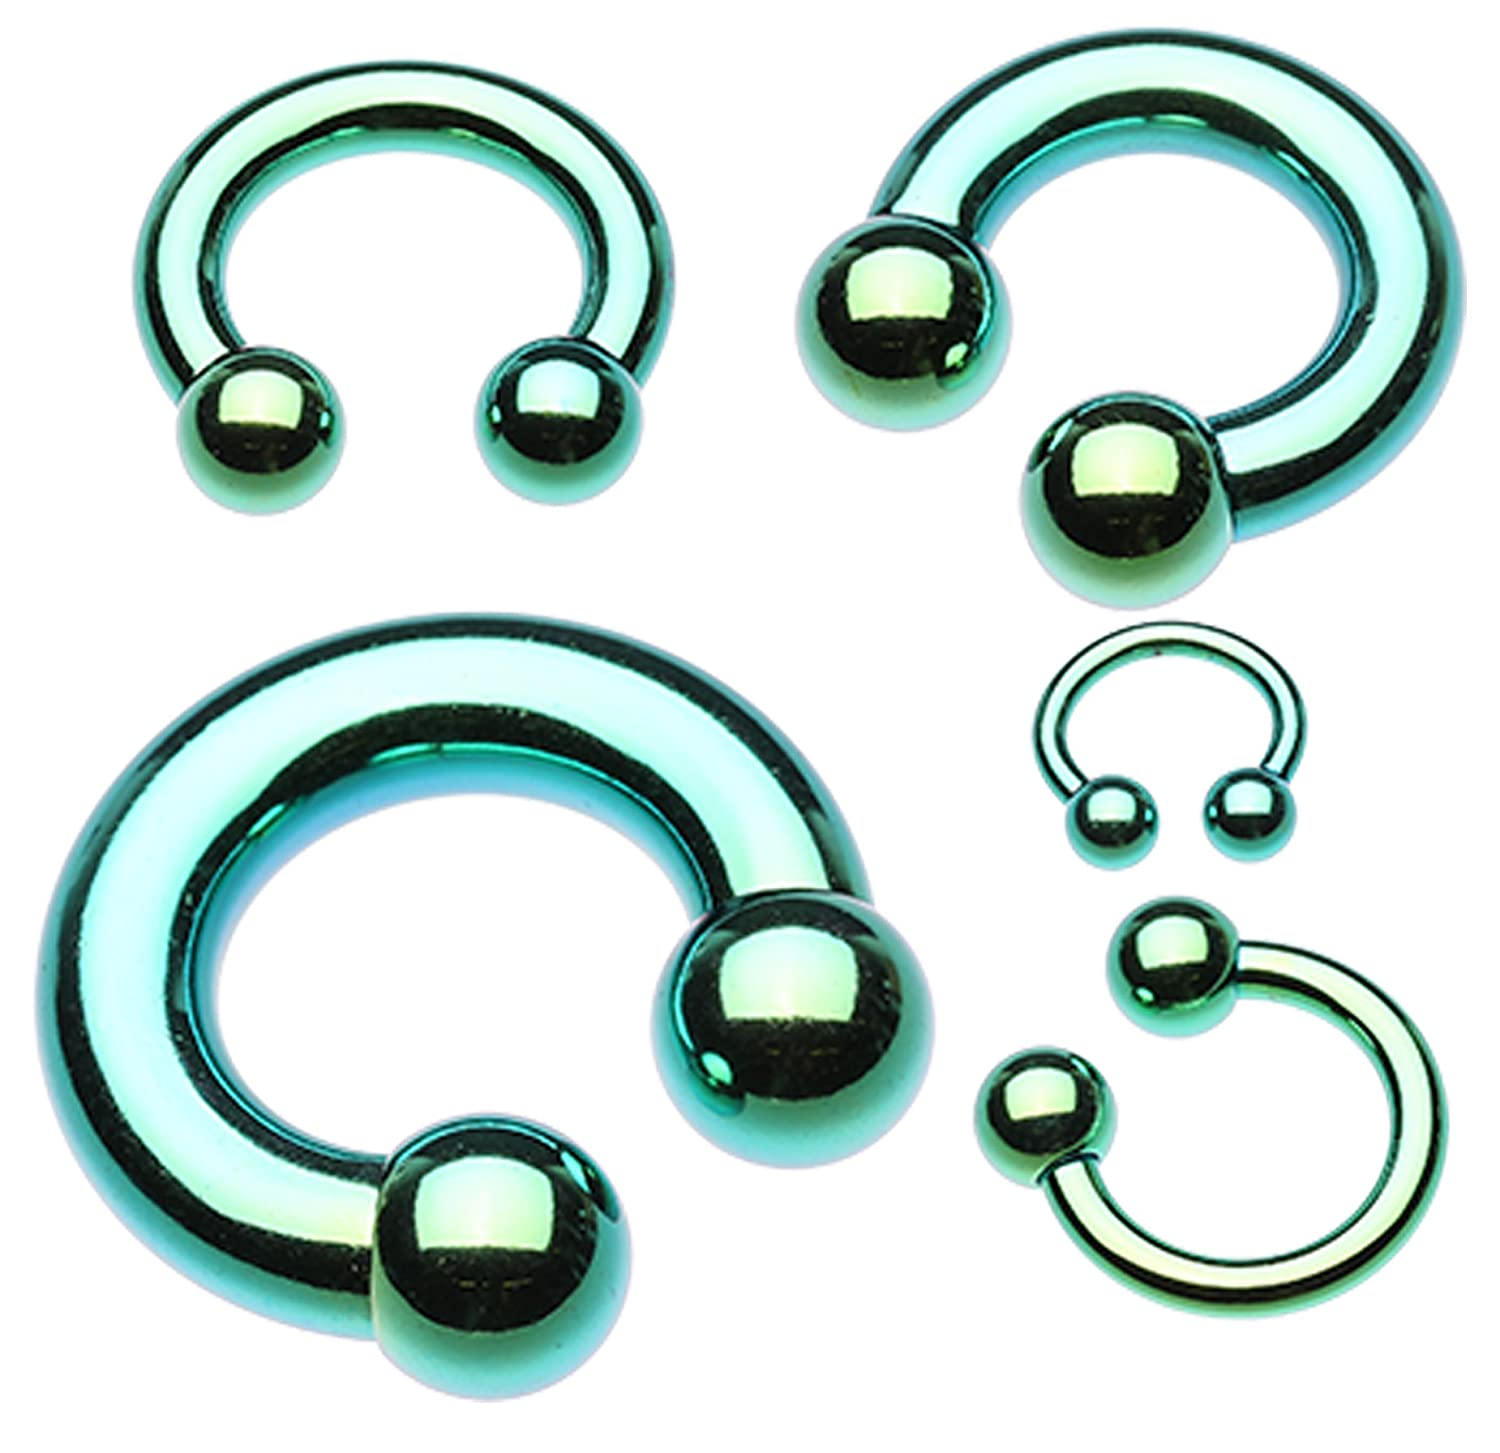 - Ball Size: 1//2 12mm 8mm 0 GA Colorline PVD Horseshoe Circular Barbell - Sold as a Pair